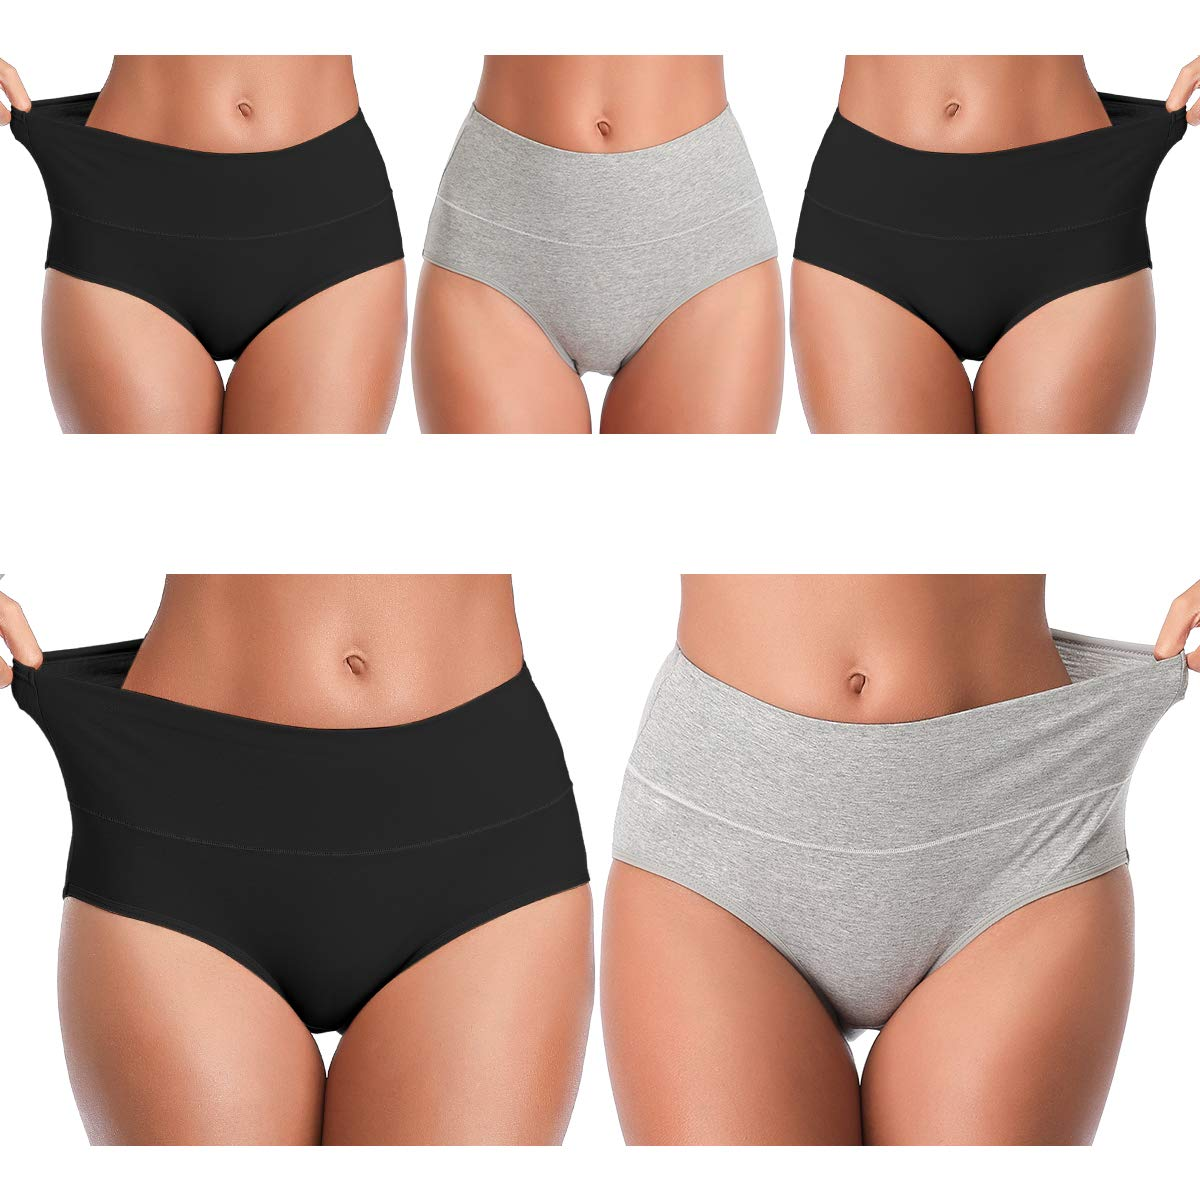 Ladies A Bite of an Apple Low Waist Underwear Panty Comfortable Brief for Women